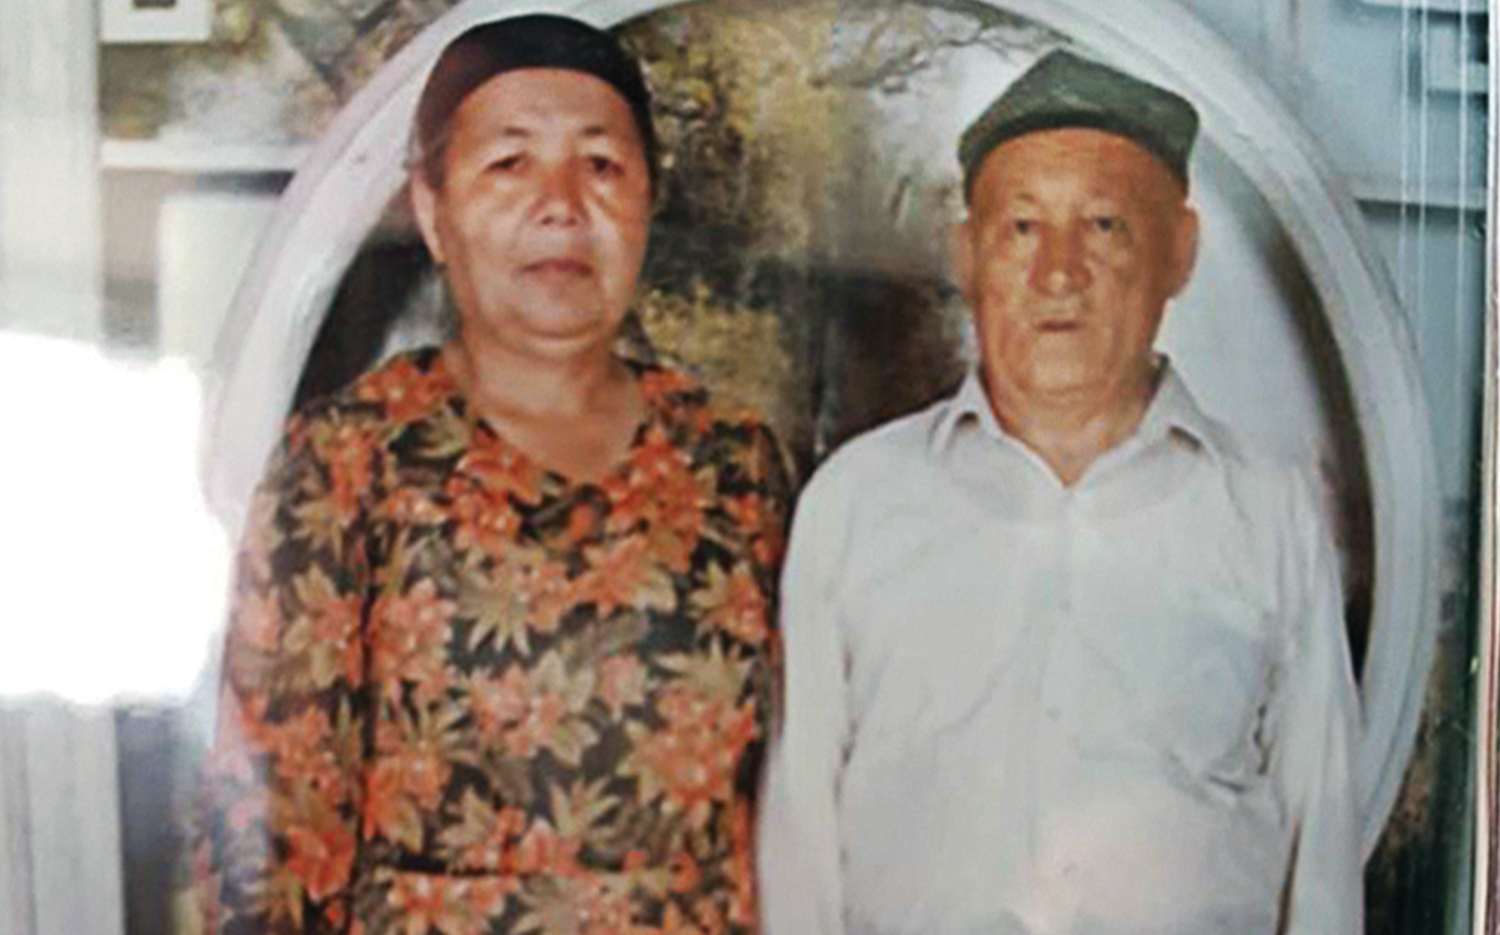 Isa's mother and father, Ayhan and Isa Memet, in an undated photo.